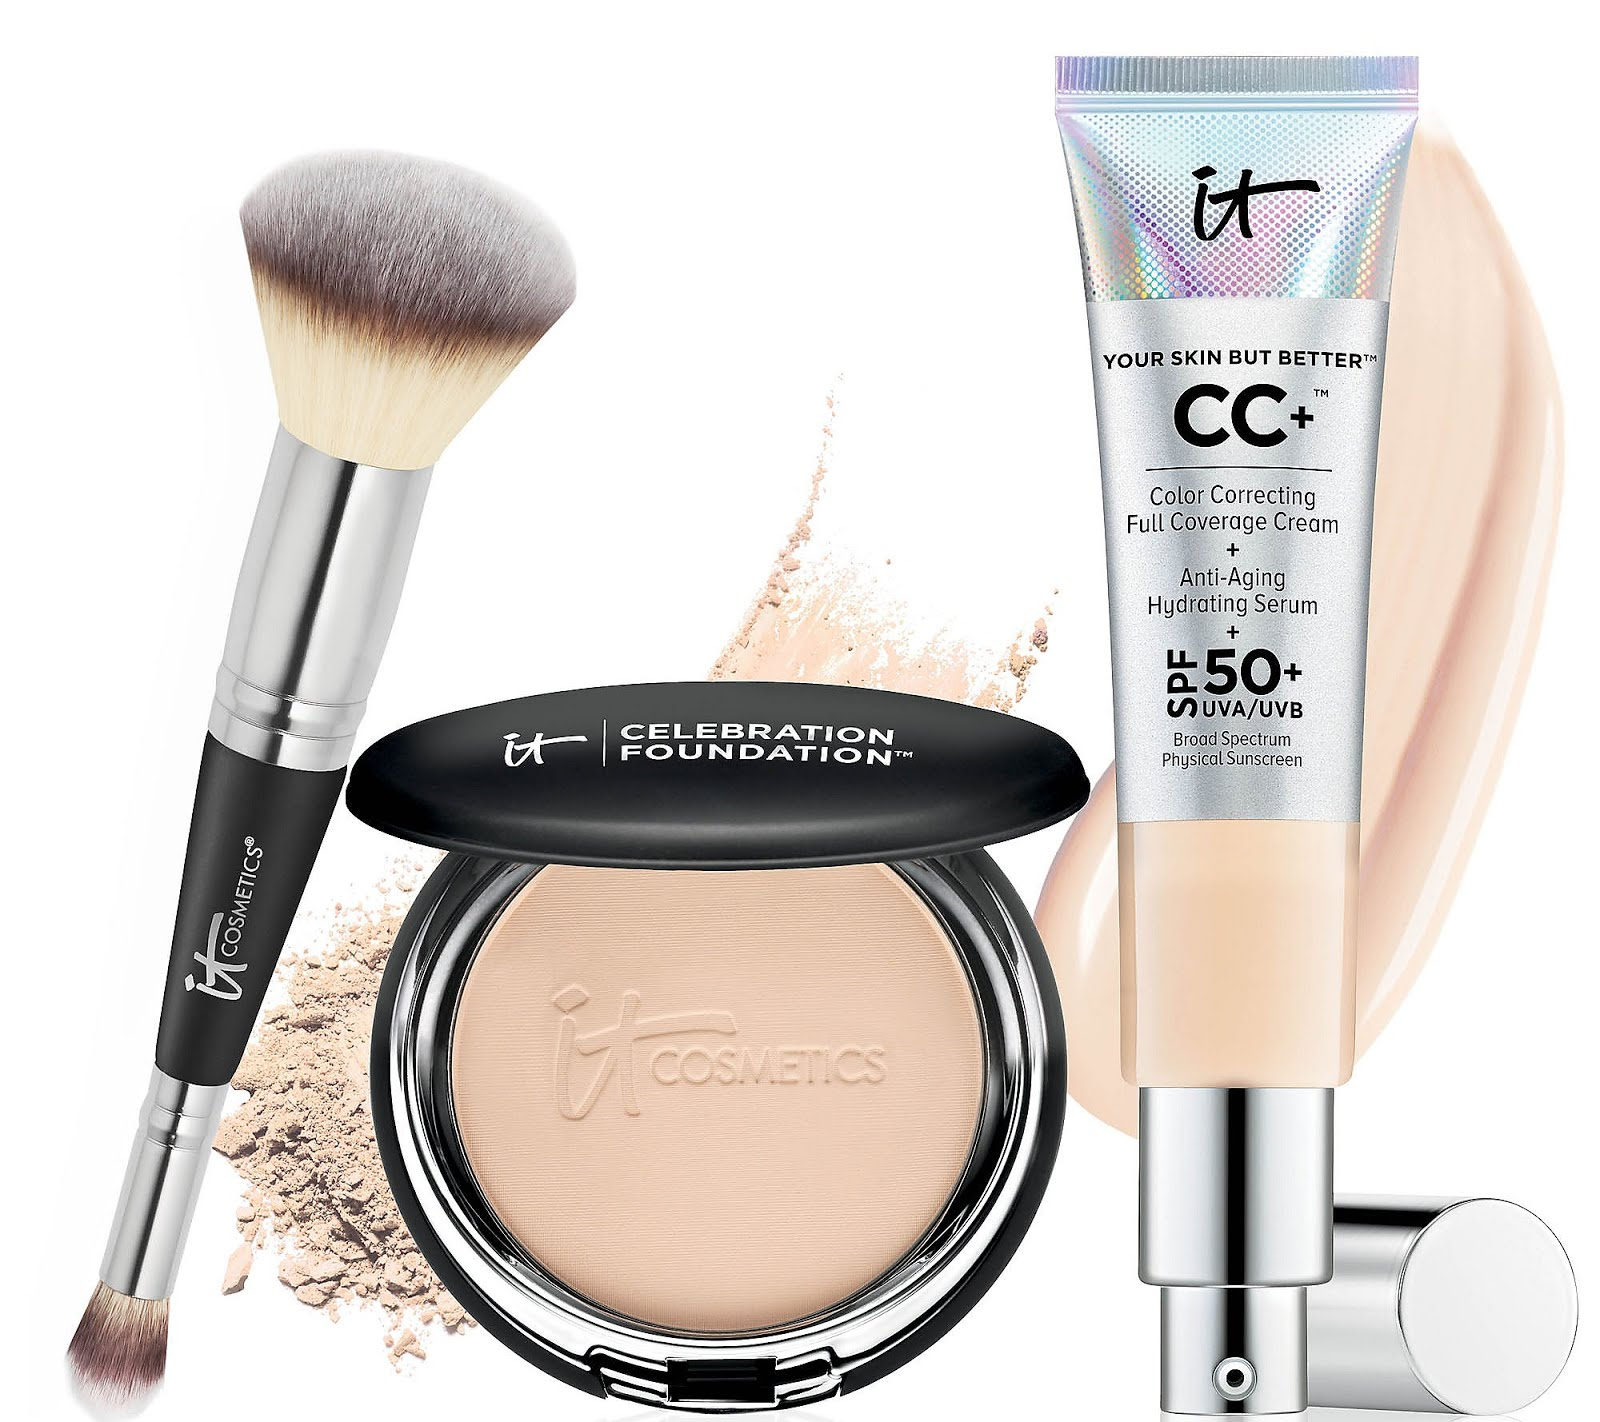 Flawless Complexion Ends 5/31